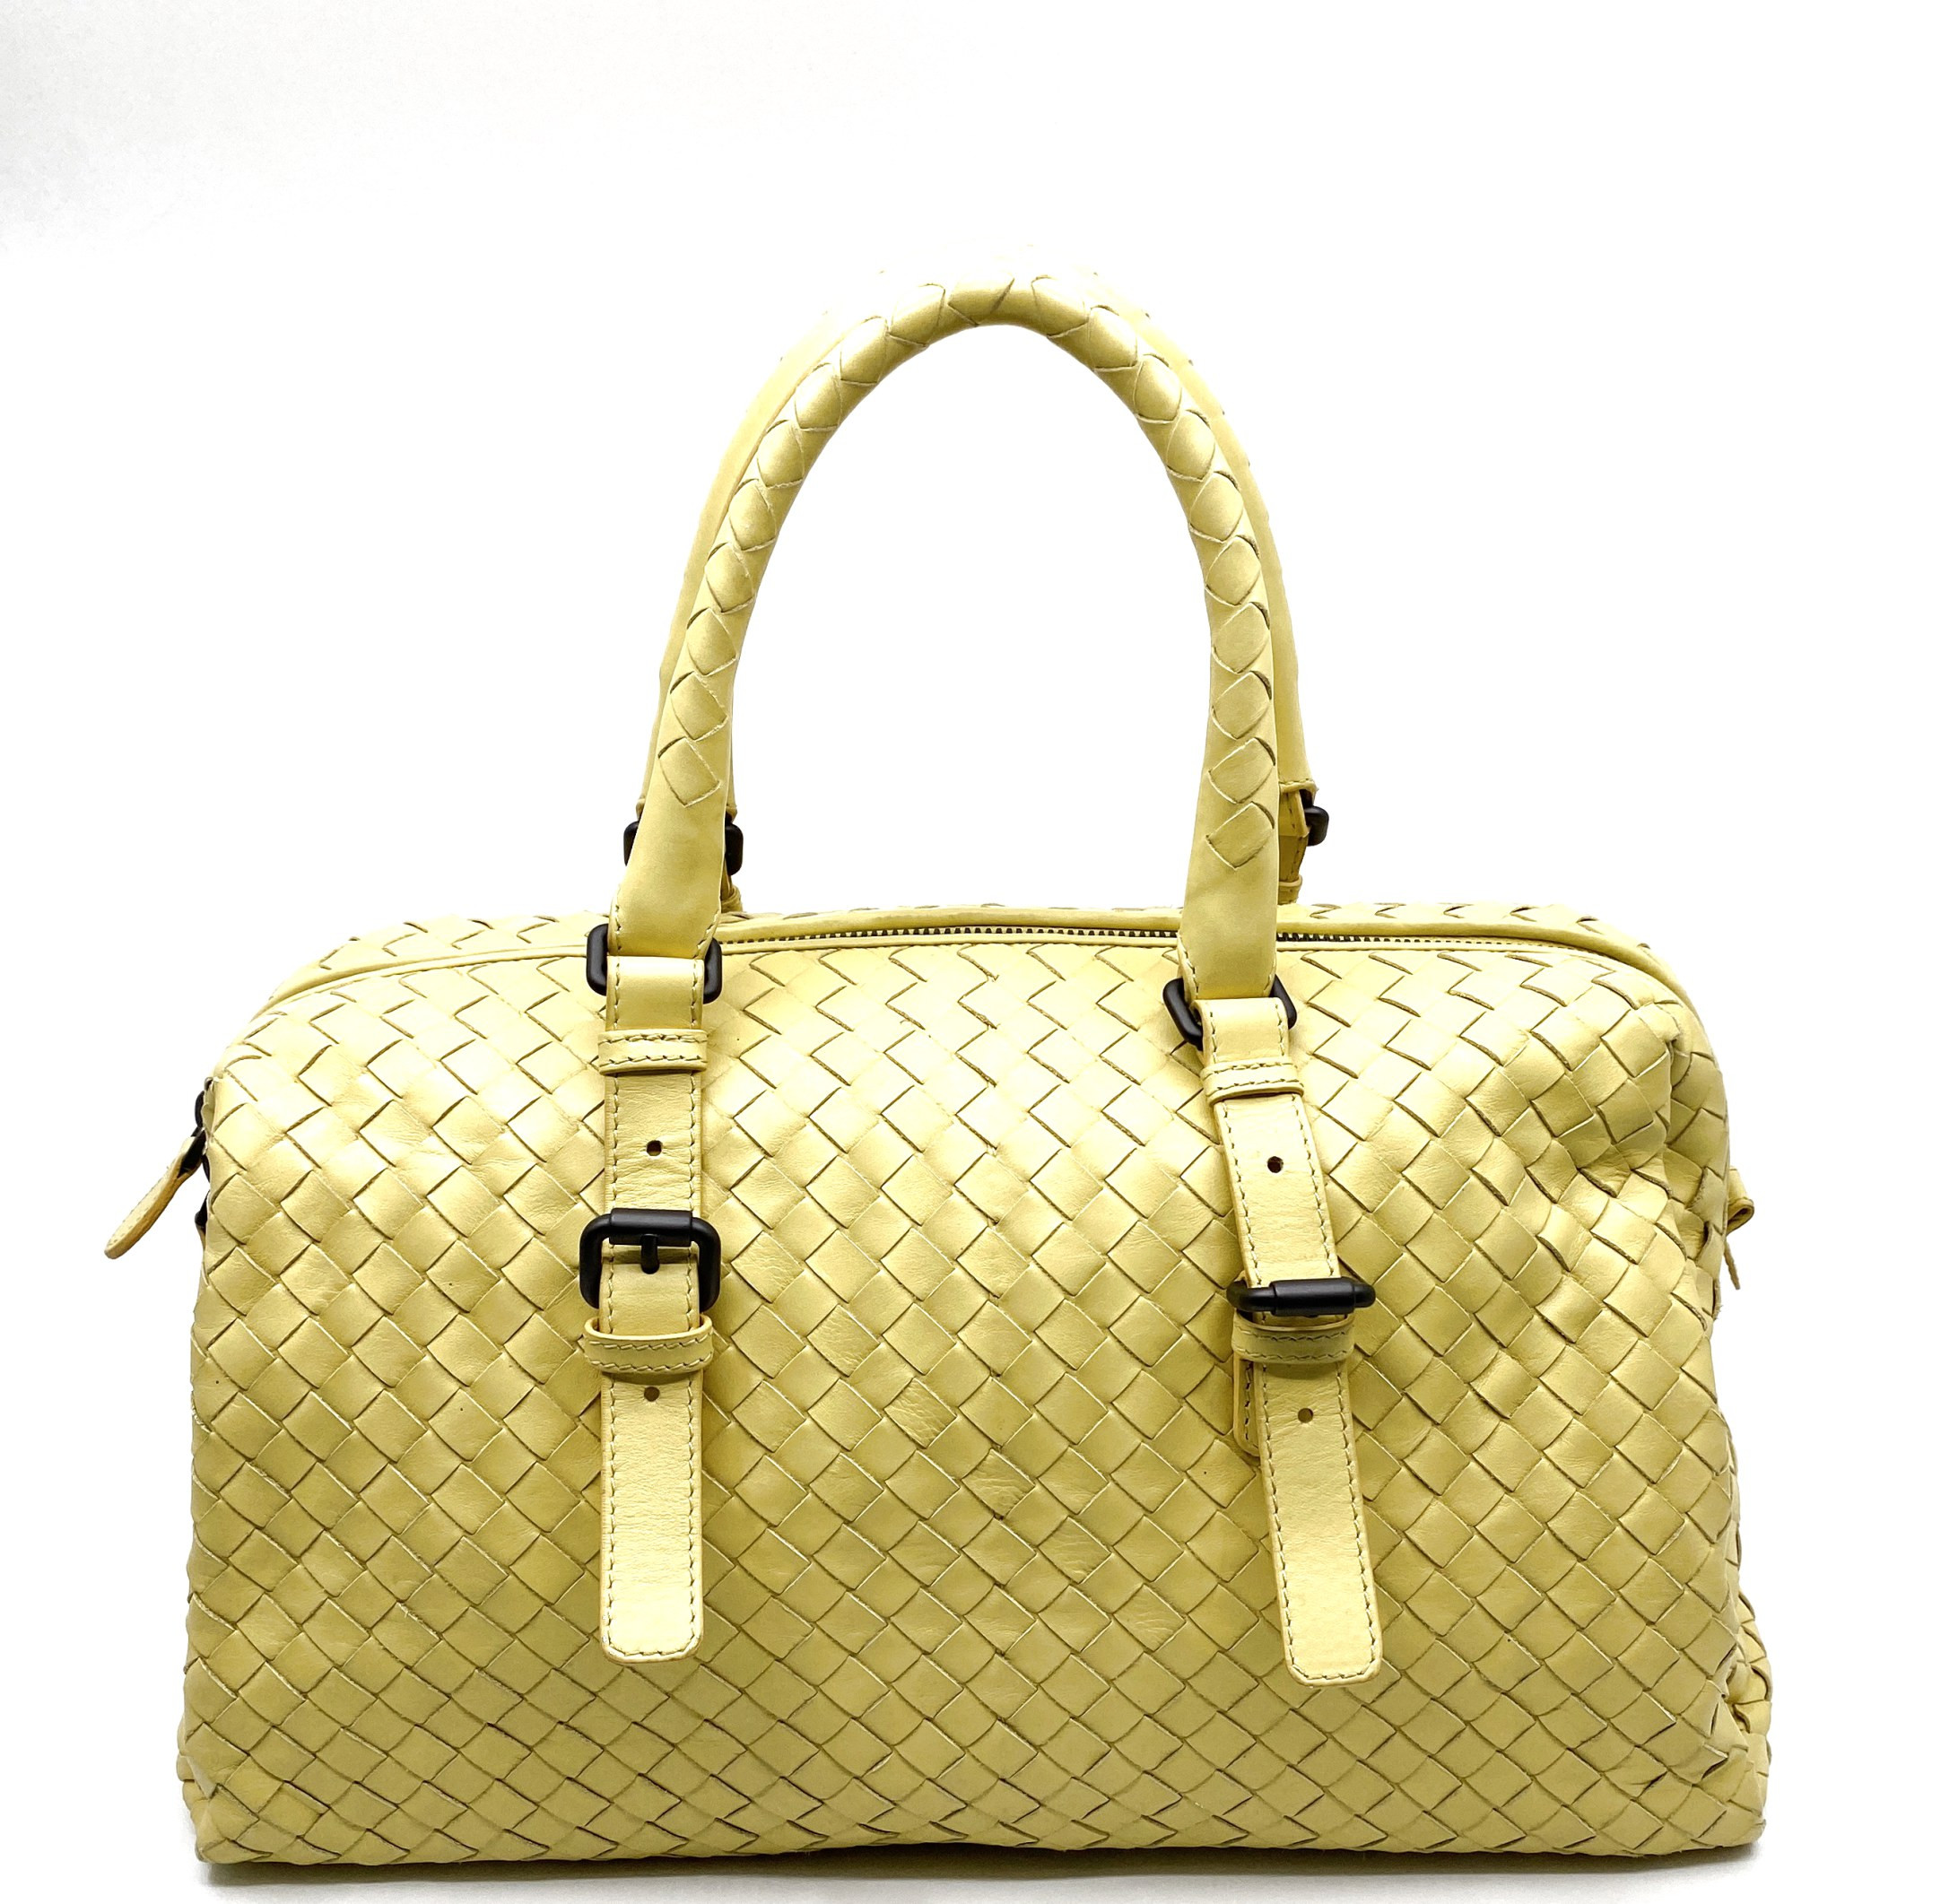 Bottega Veneta-INTRECCIATO BOSTON BAG